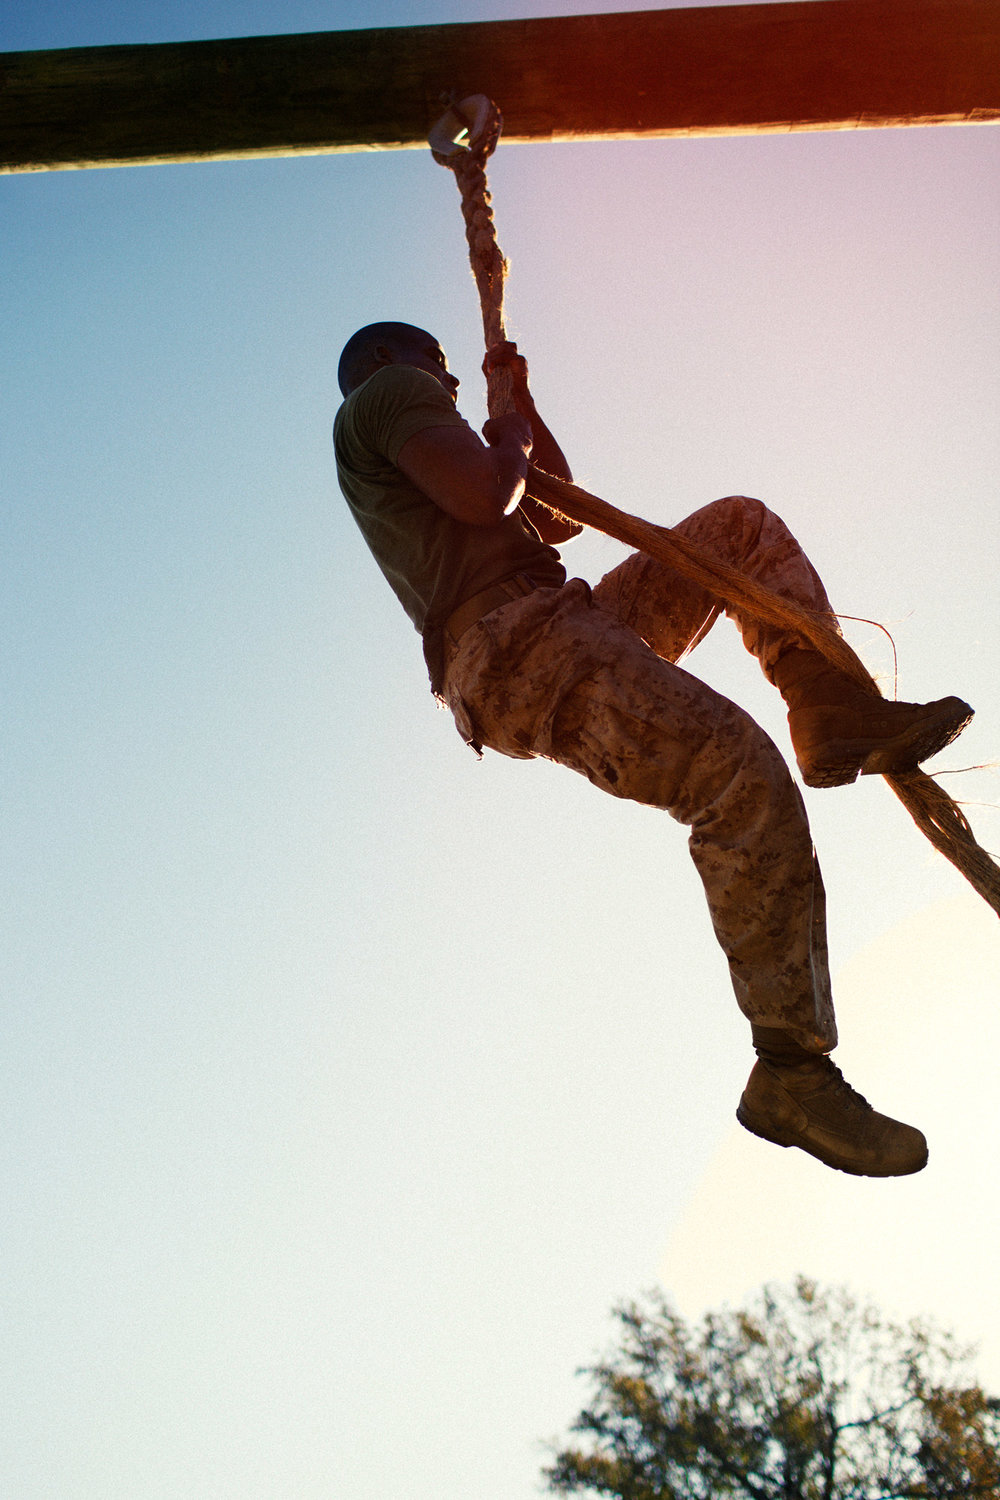 jeff-allen-web-111108_michael-steadman-rope-climb.jpg